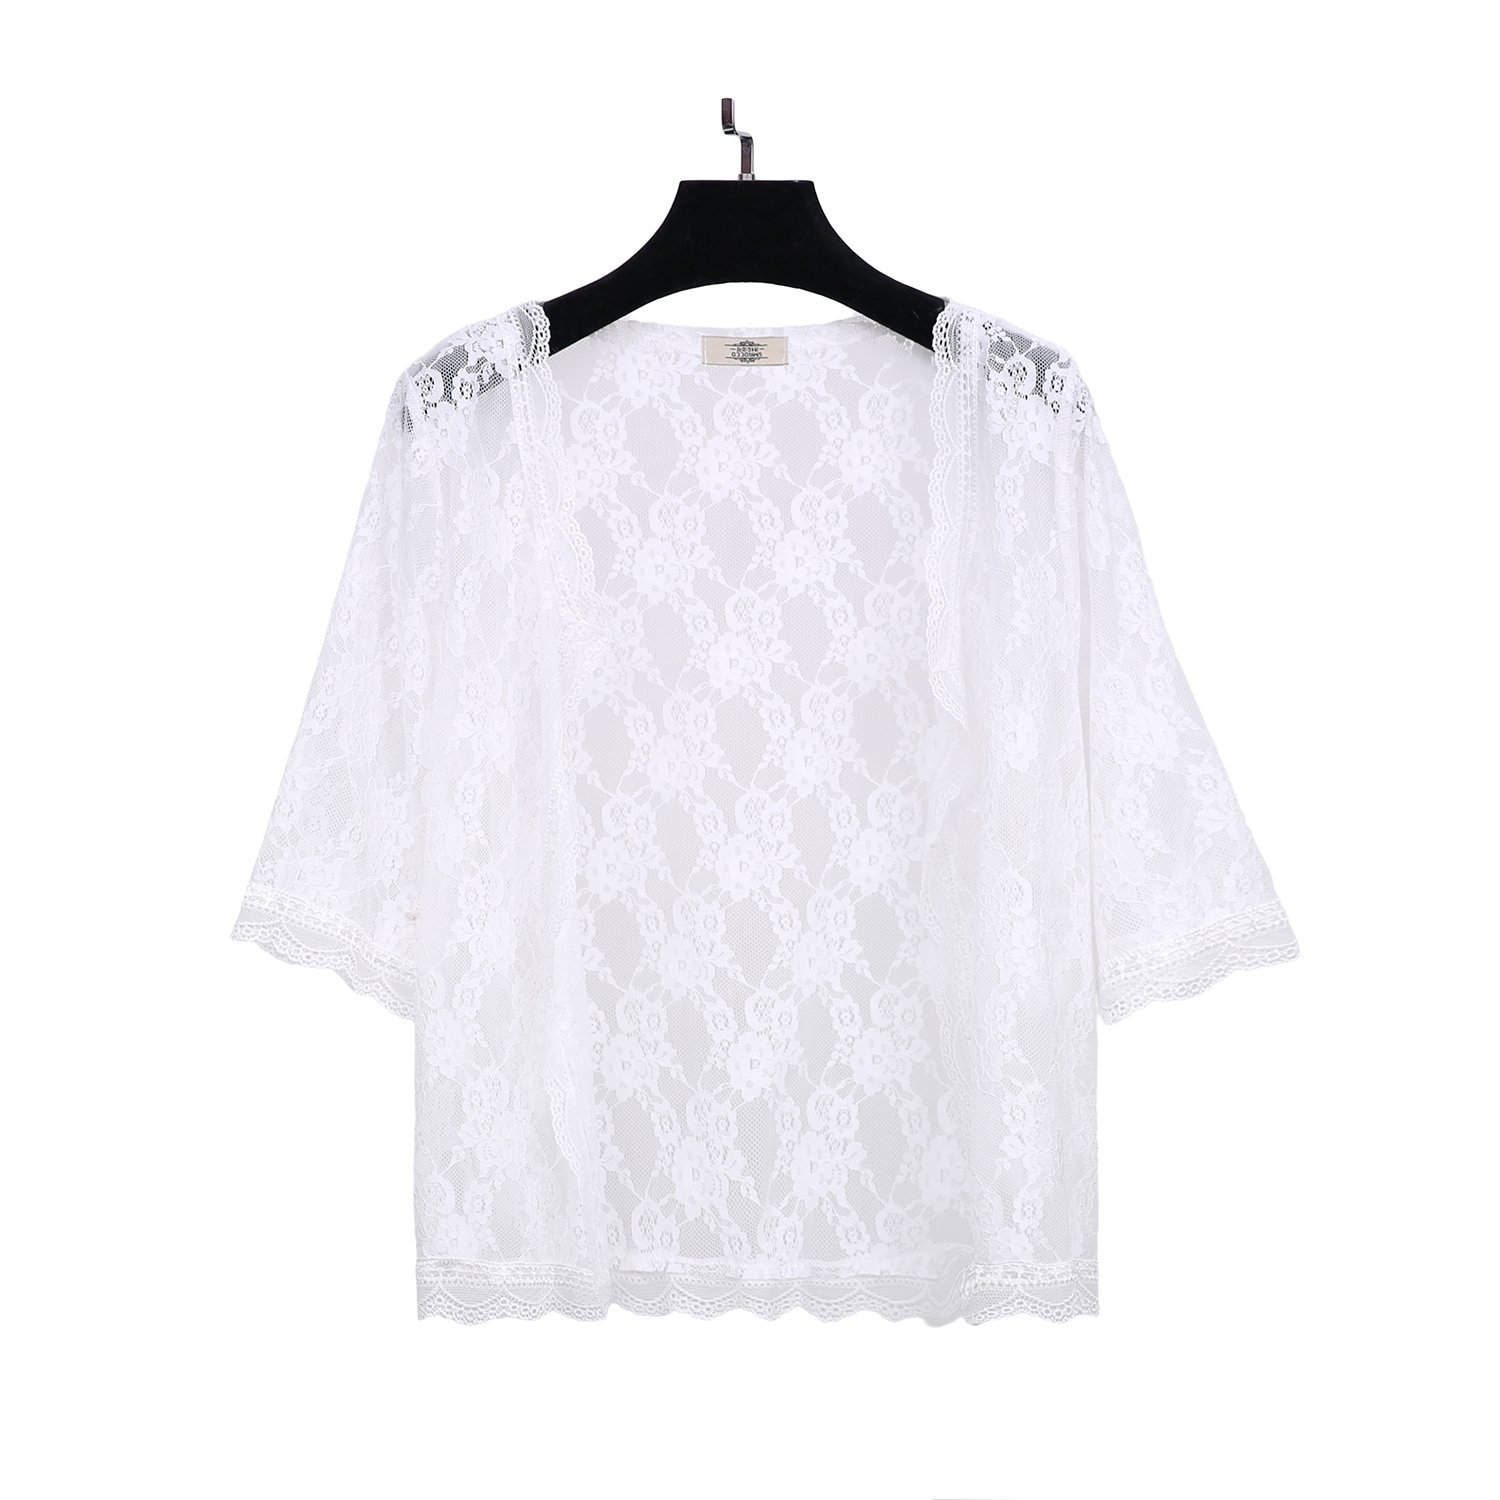 ChicChic 1/2 Sleeves See Through Lace Summer Beach Cover up Open Cardigan for Women,XL